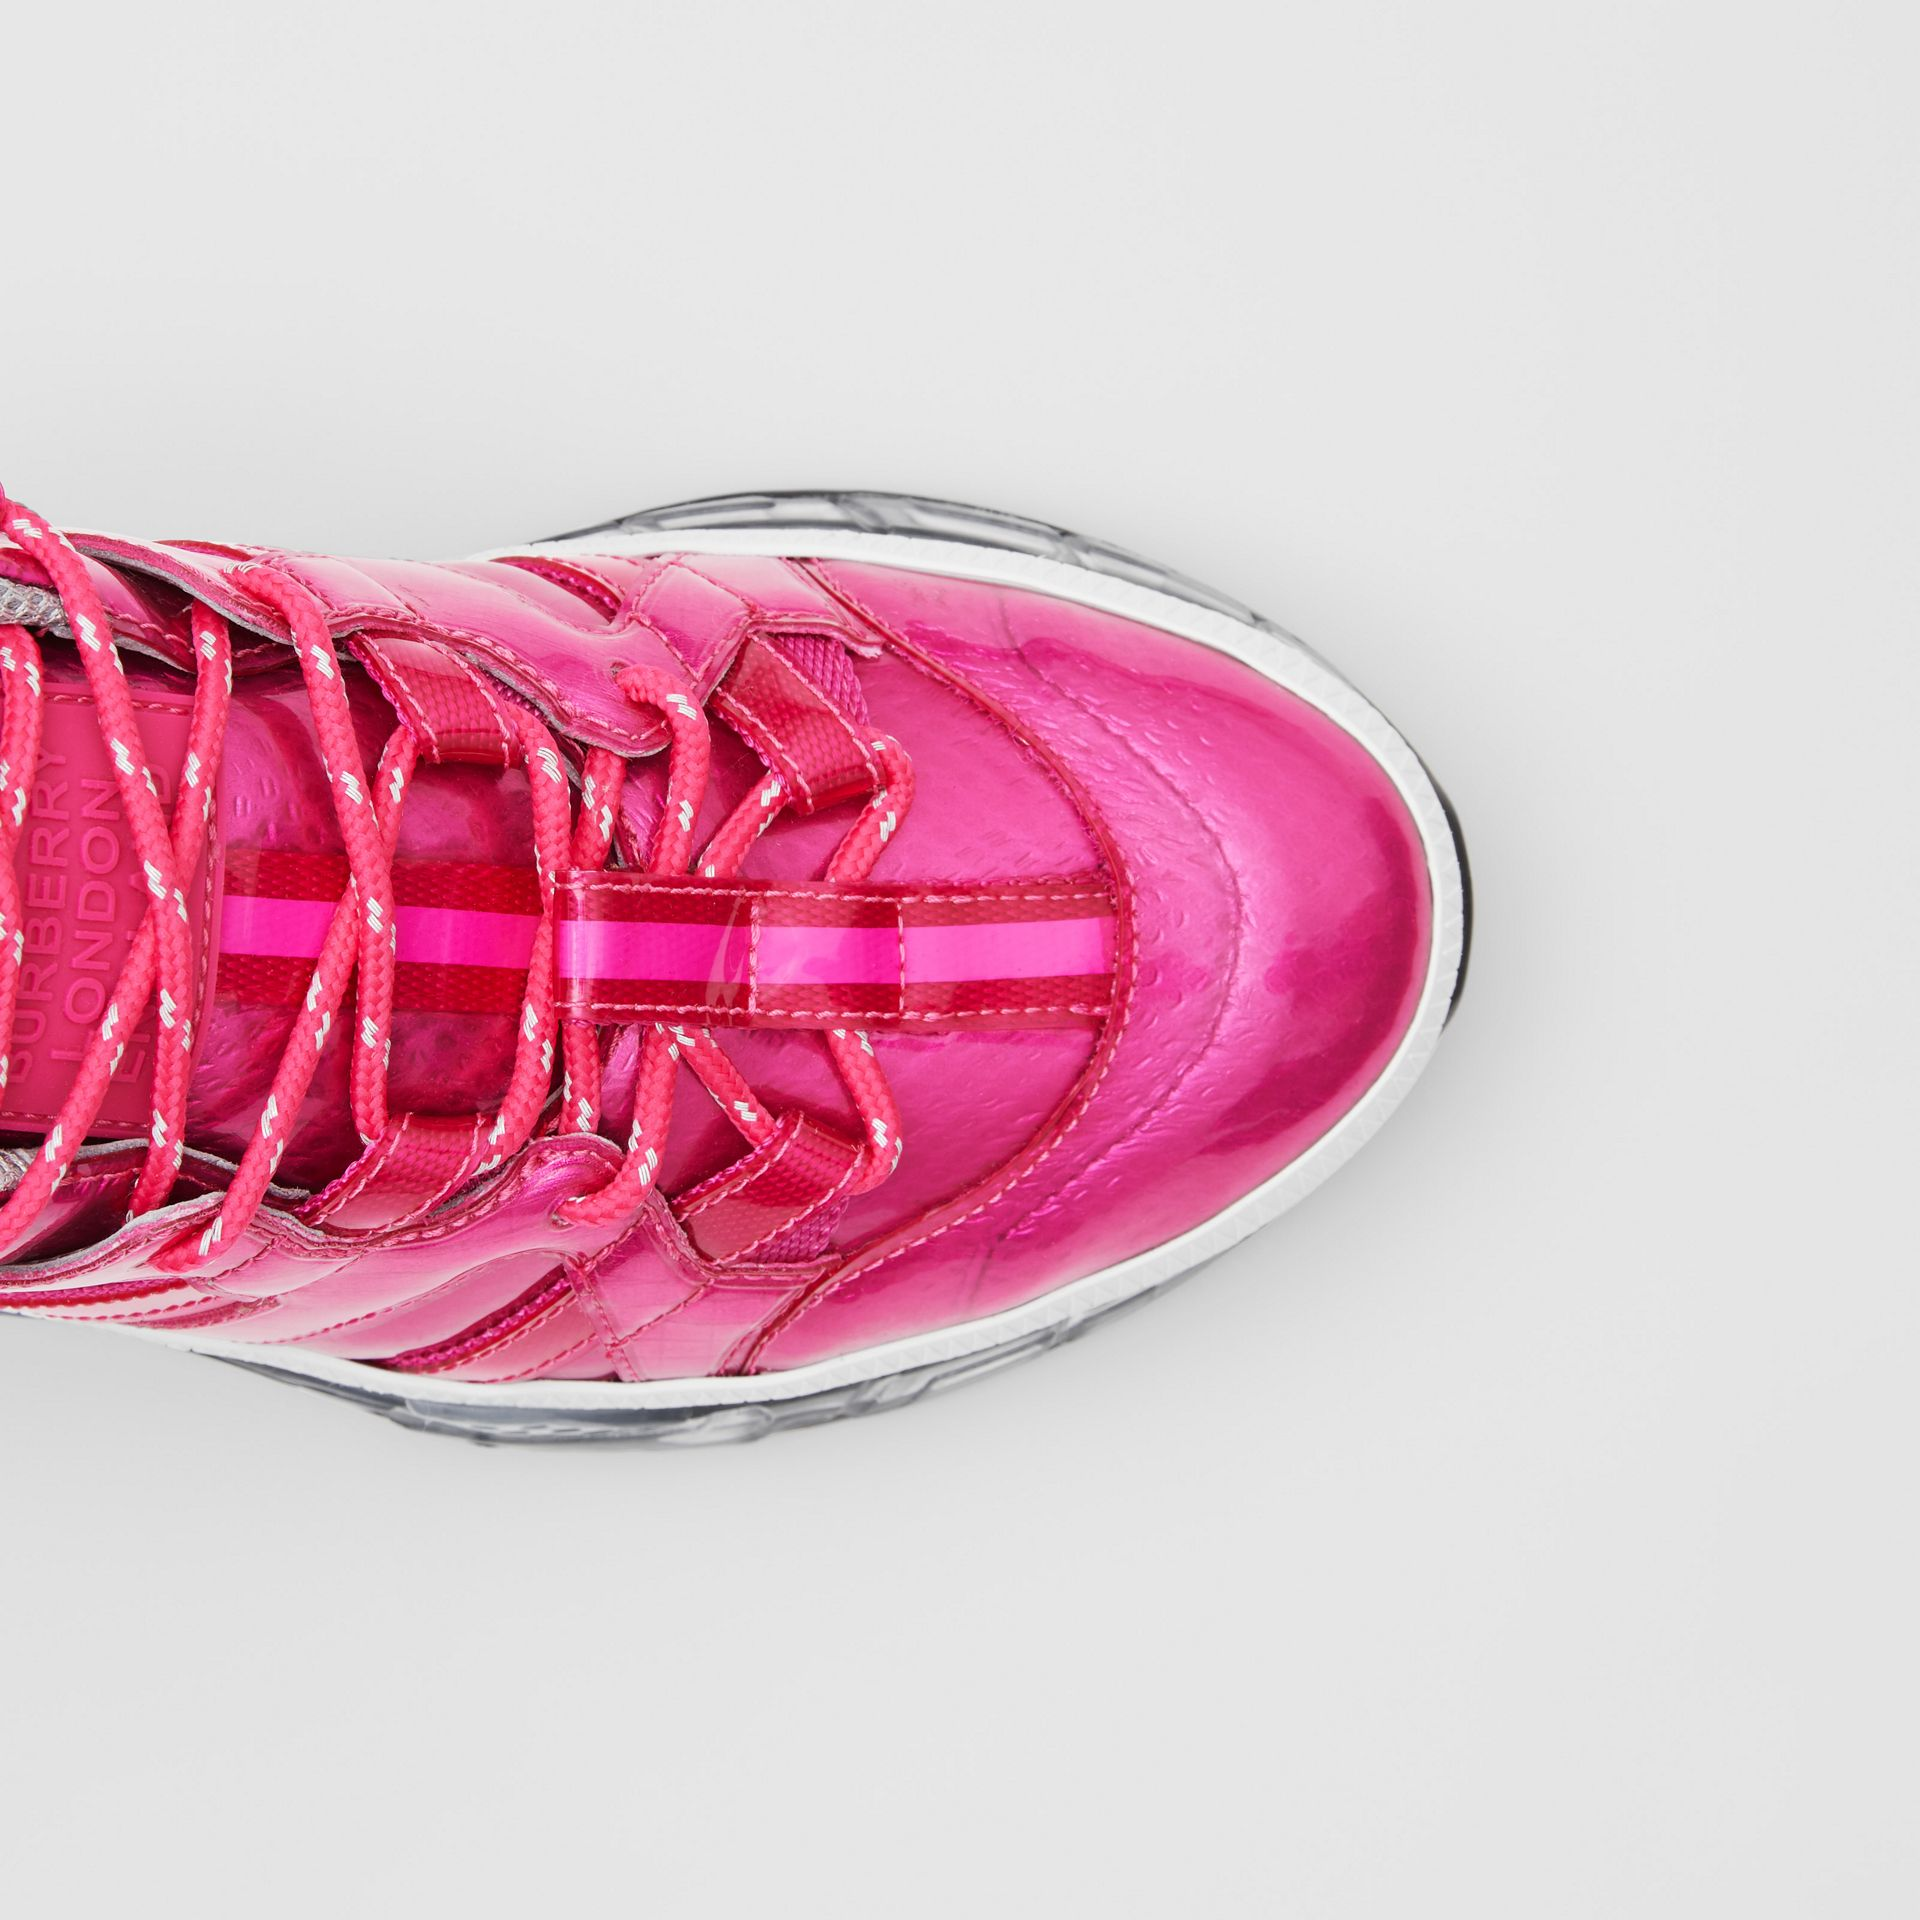 Vinyl and Nylon Union Sneakers in Fuchsia - Women | Burberry - gallery image 1